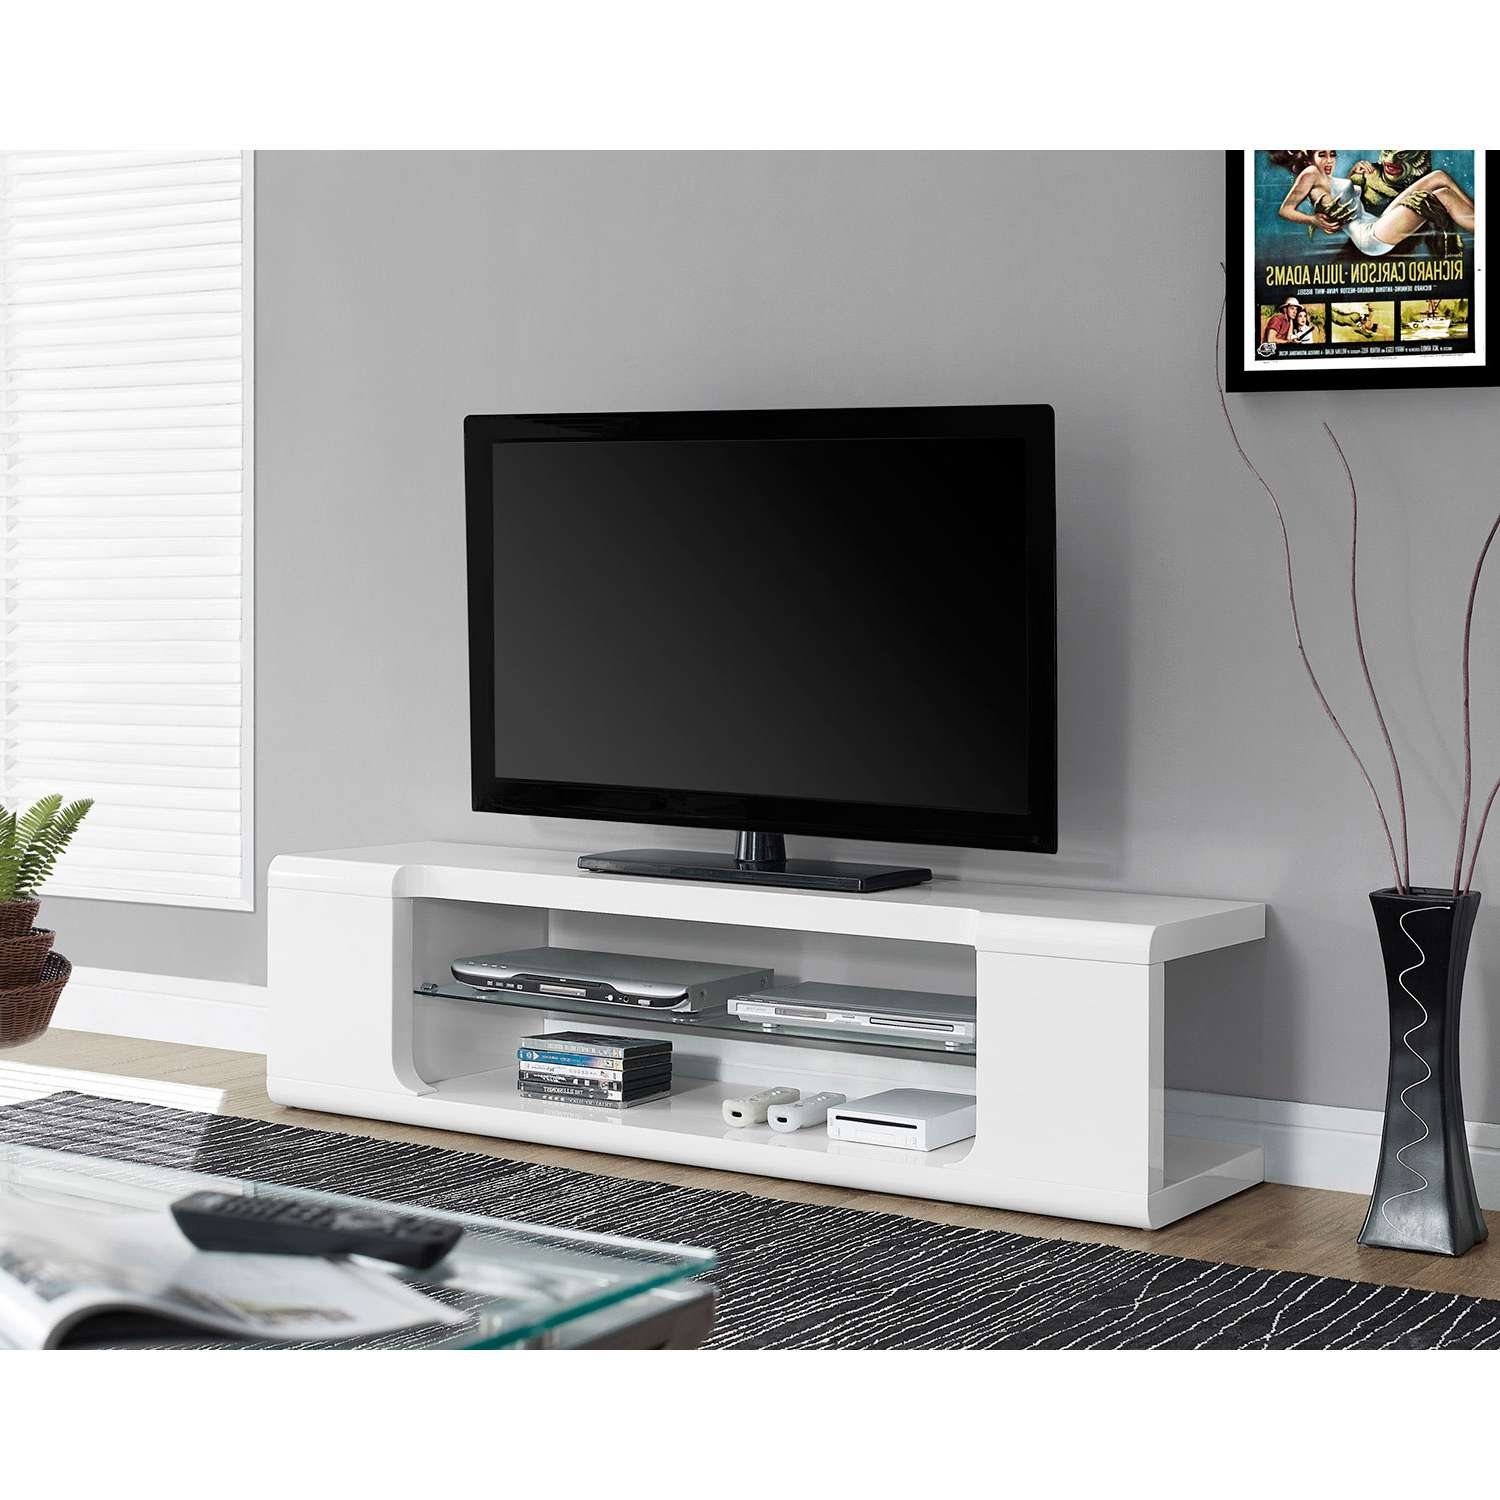 """Monarch Tv Stand For Tvs Up To 60"""" (I 3535) – Glossy White : Tv In Contemporary Glass Tv Stands (View 9 of 15)"""